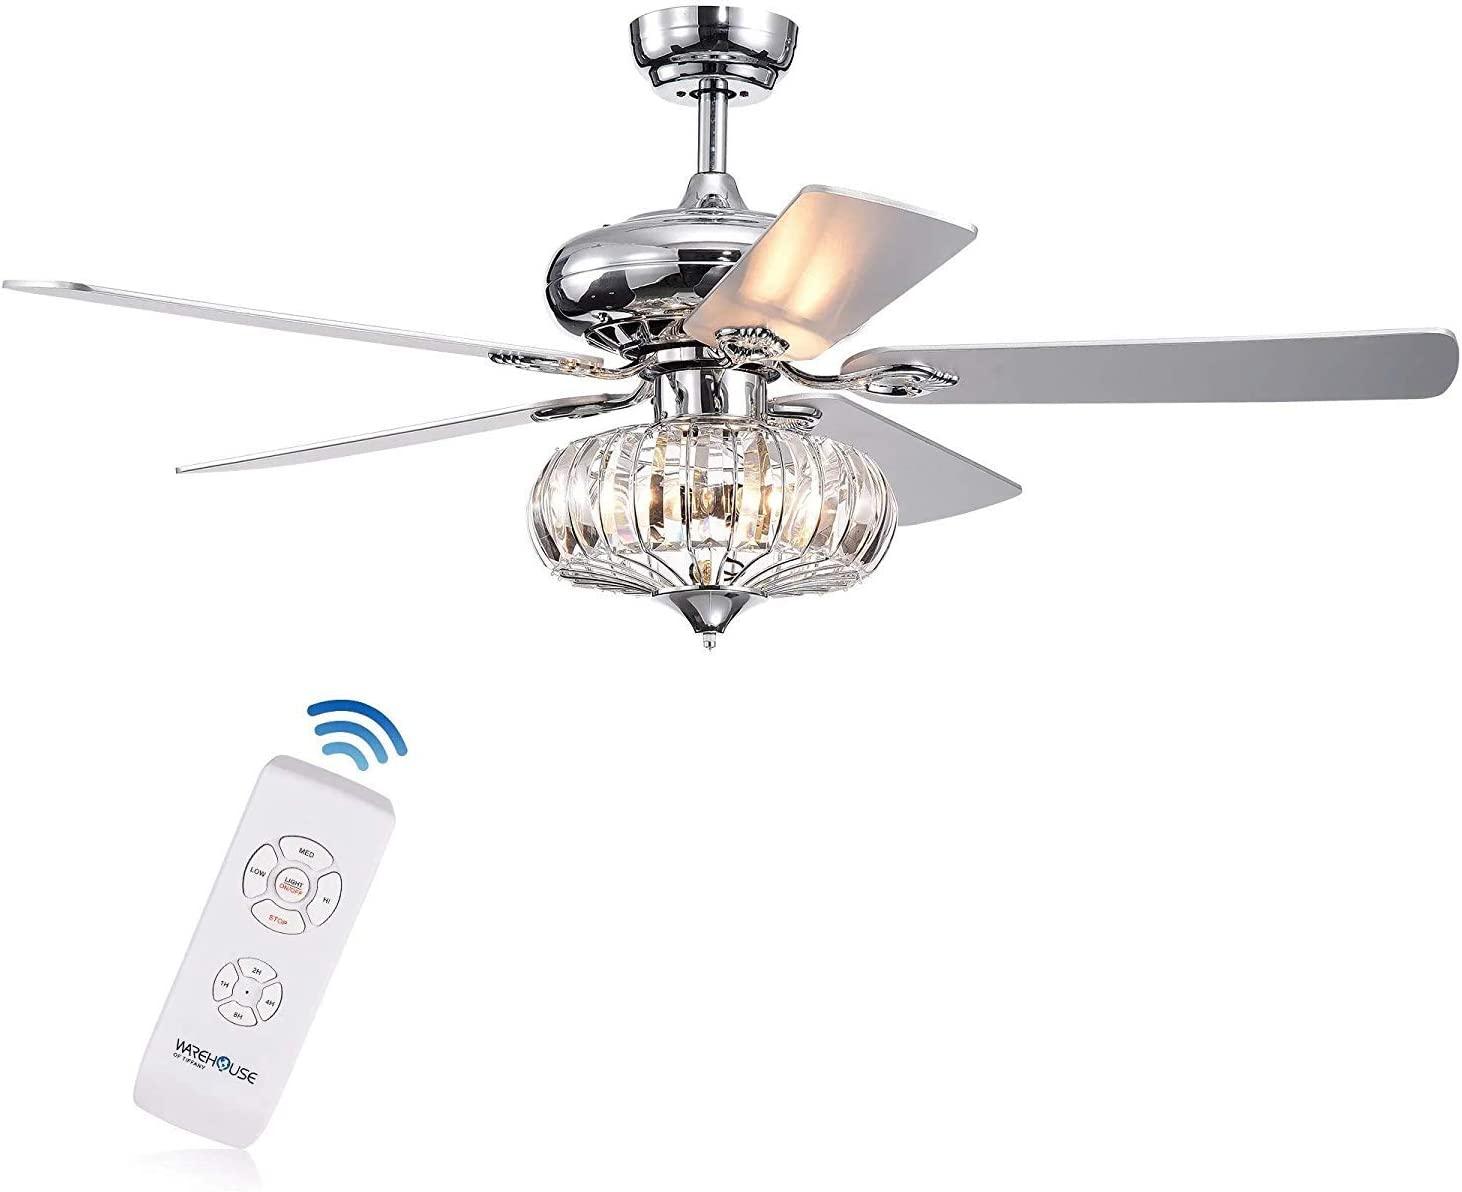 LuxureFan 52Inch Modern Reversible Ceiling Fan Light Bulbs with 5 Wood Blade Crystal Ceiling Fan with Remote Control 3 Speed Decoration for Home Restaurant Living Room of Chrome